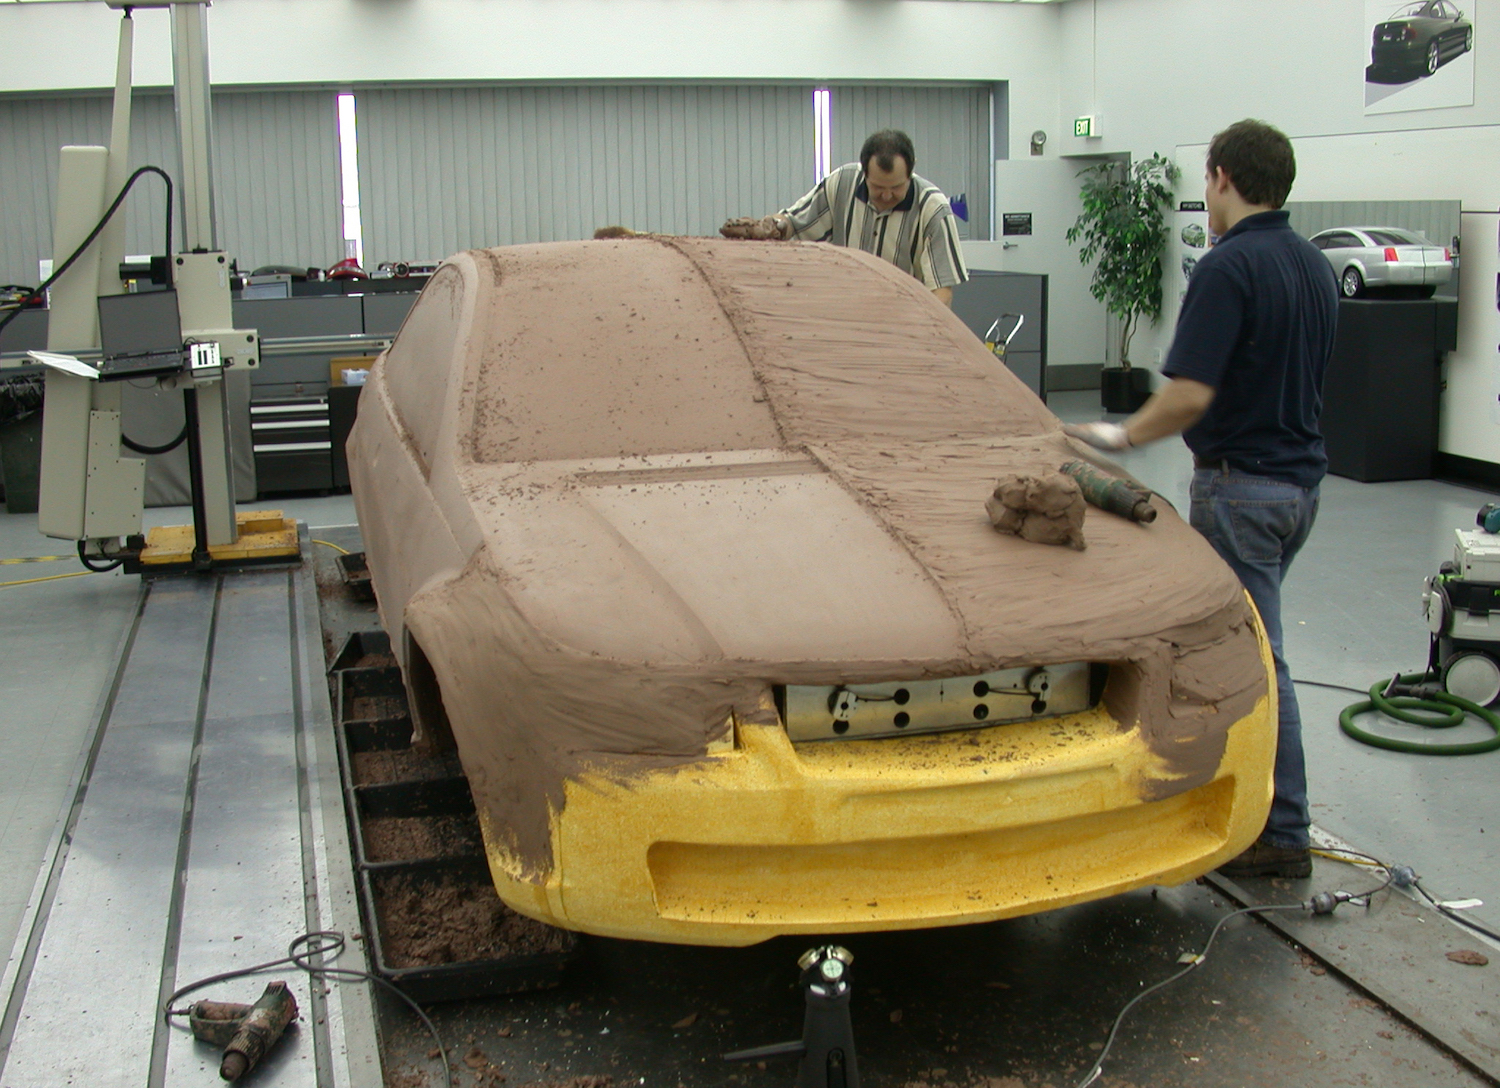 holden designers work on clay model prototype